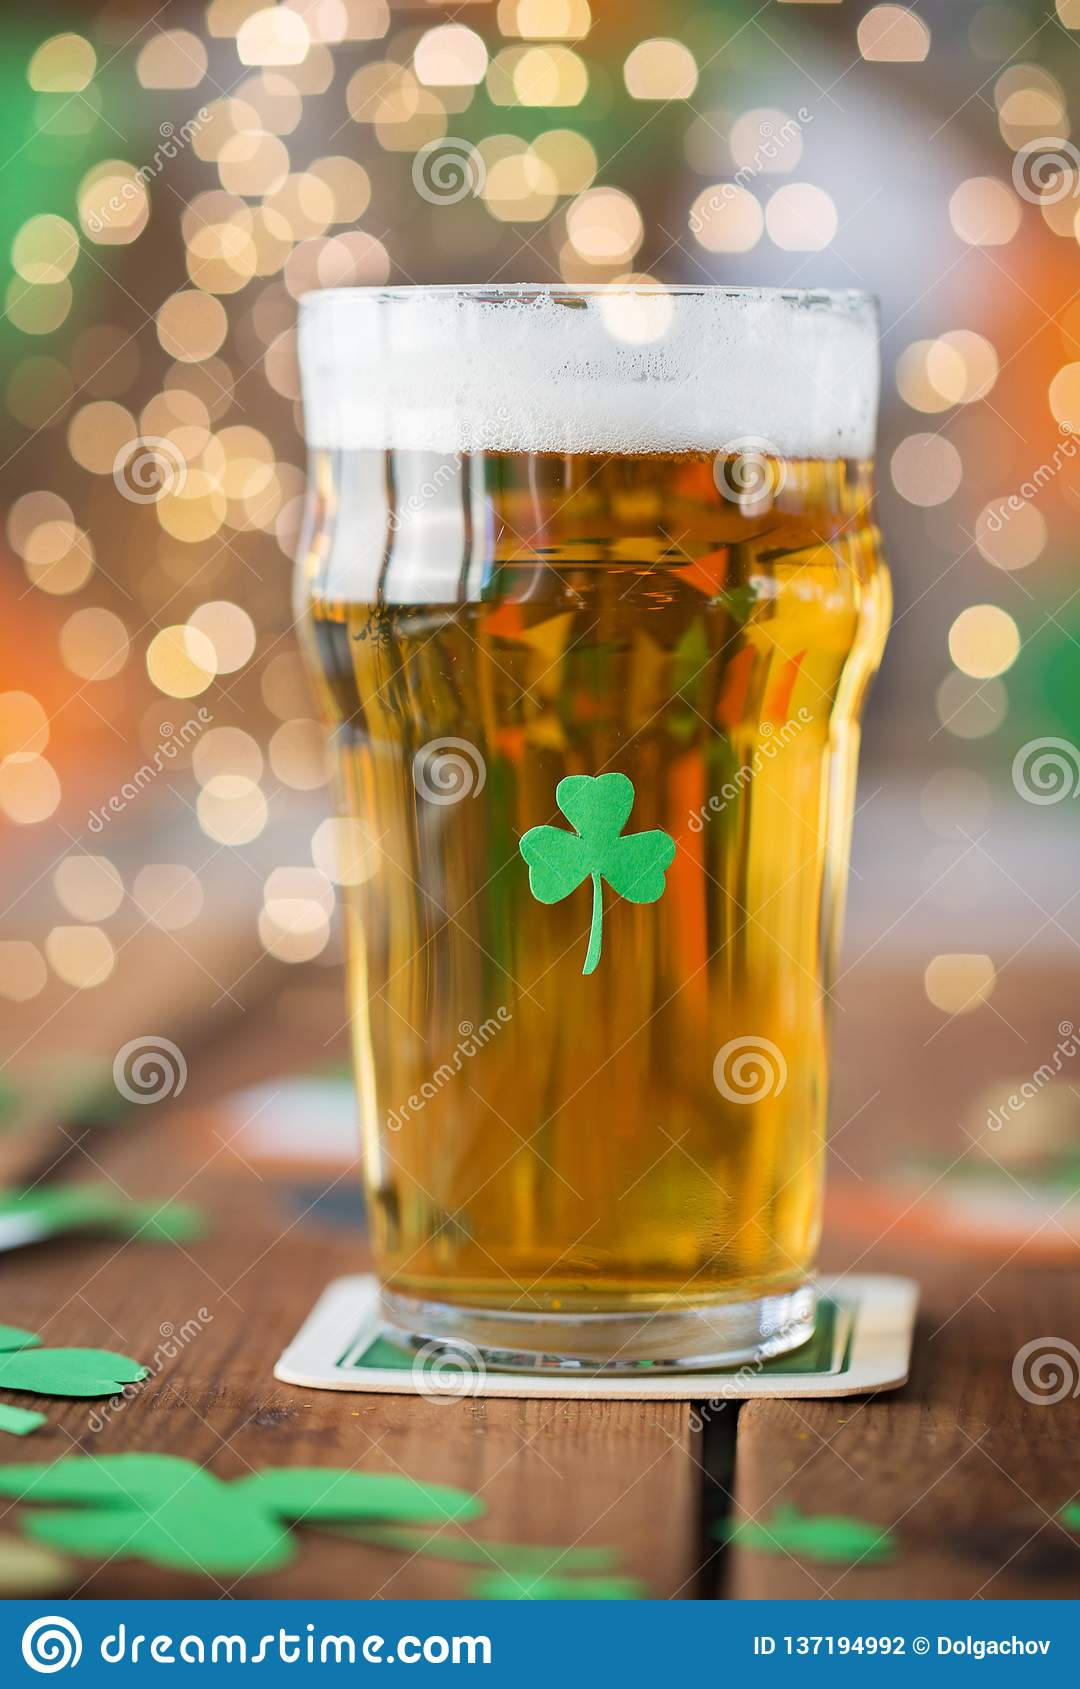 Close Up Of Glass Of Beer With Shamrock On Table Stock Photo Image Of Beer Light 137194992